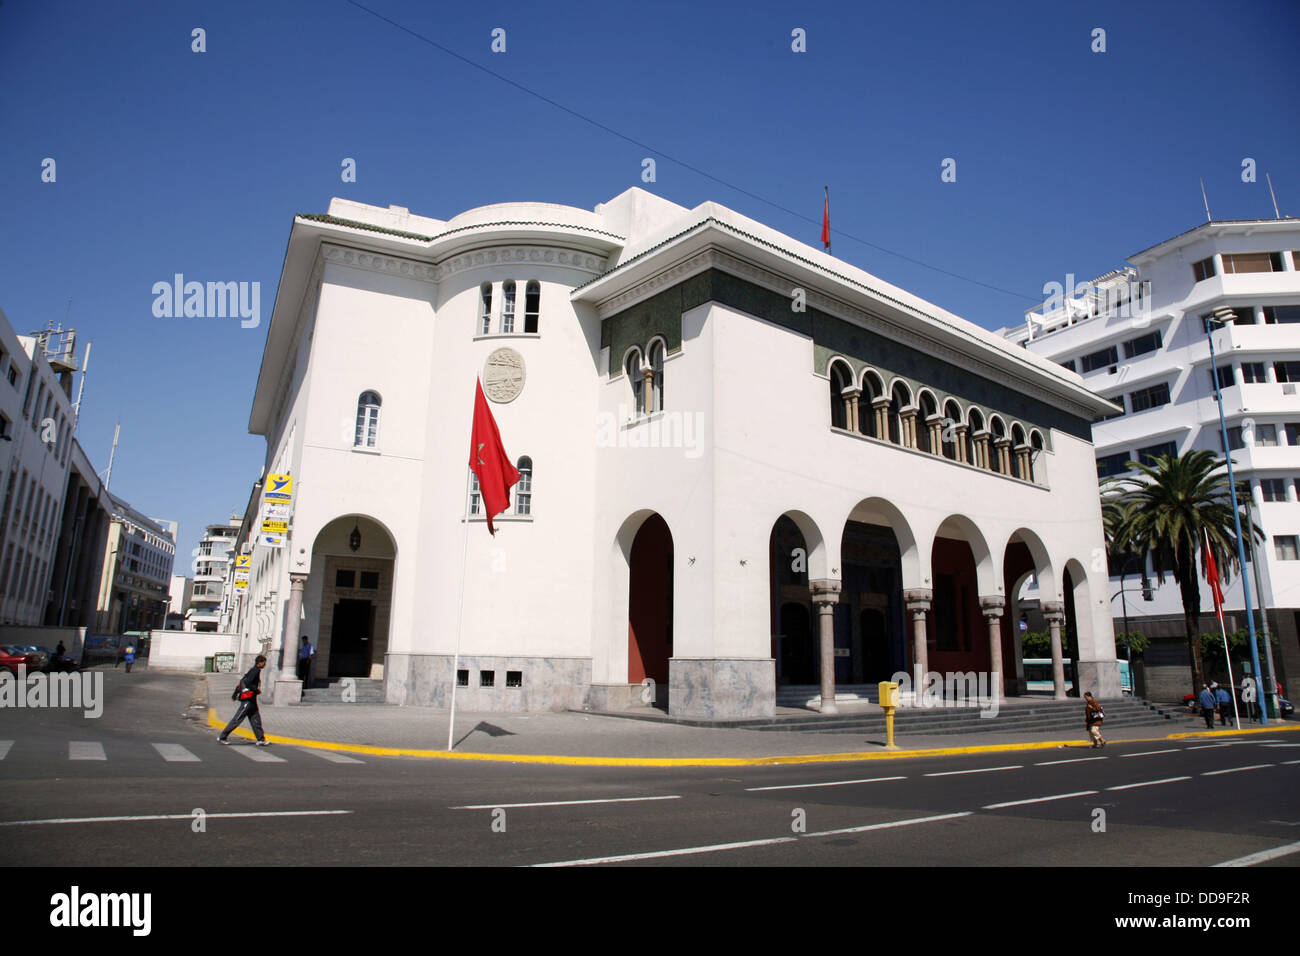 Post office casablanca stock photos & post office casablanca stock